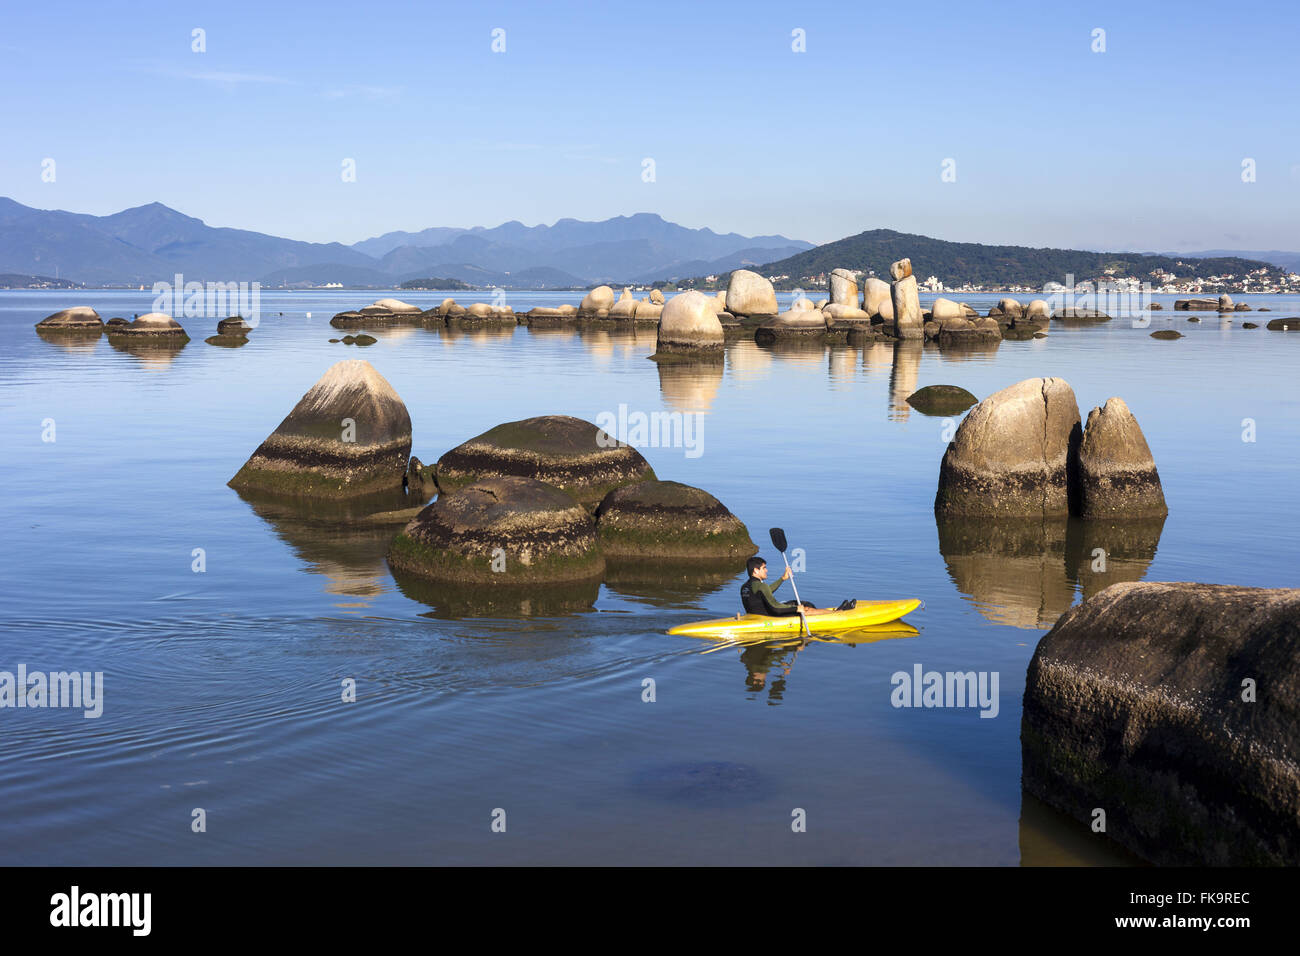 Kayaking between the rounded rock formations of Itaguacu Beach - Stock Image